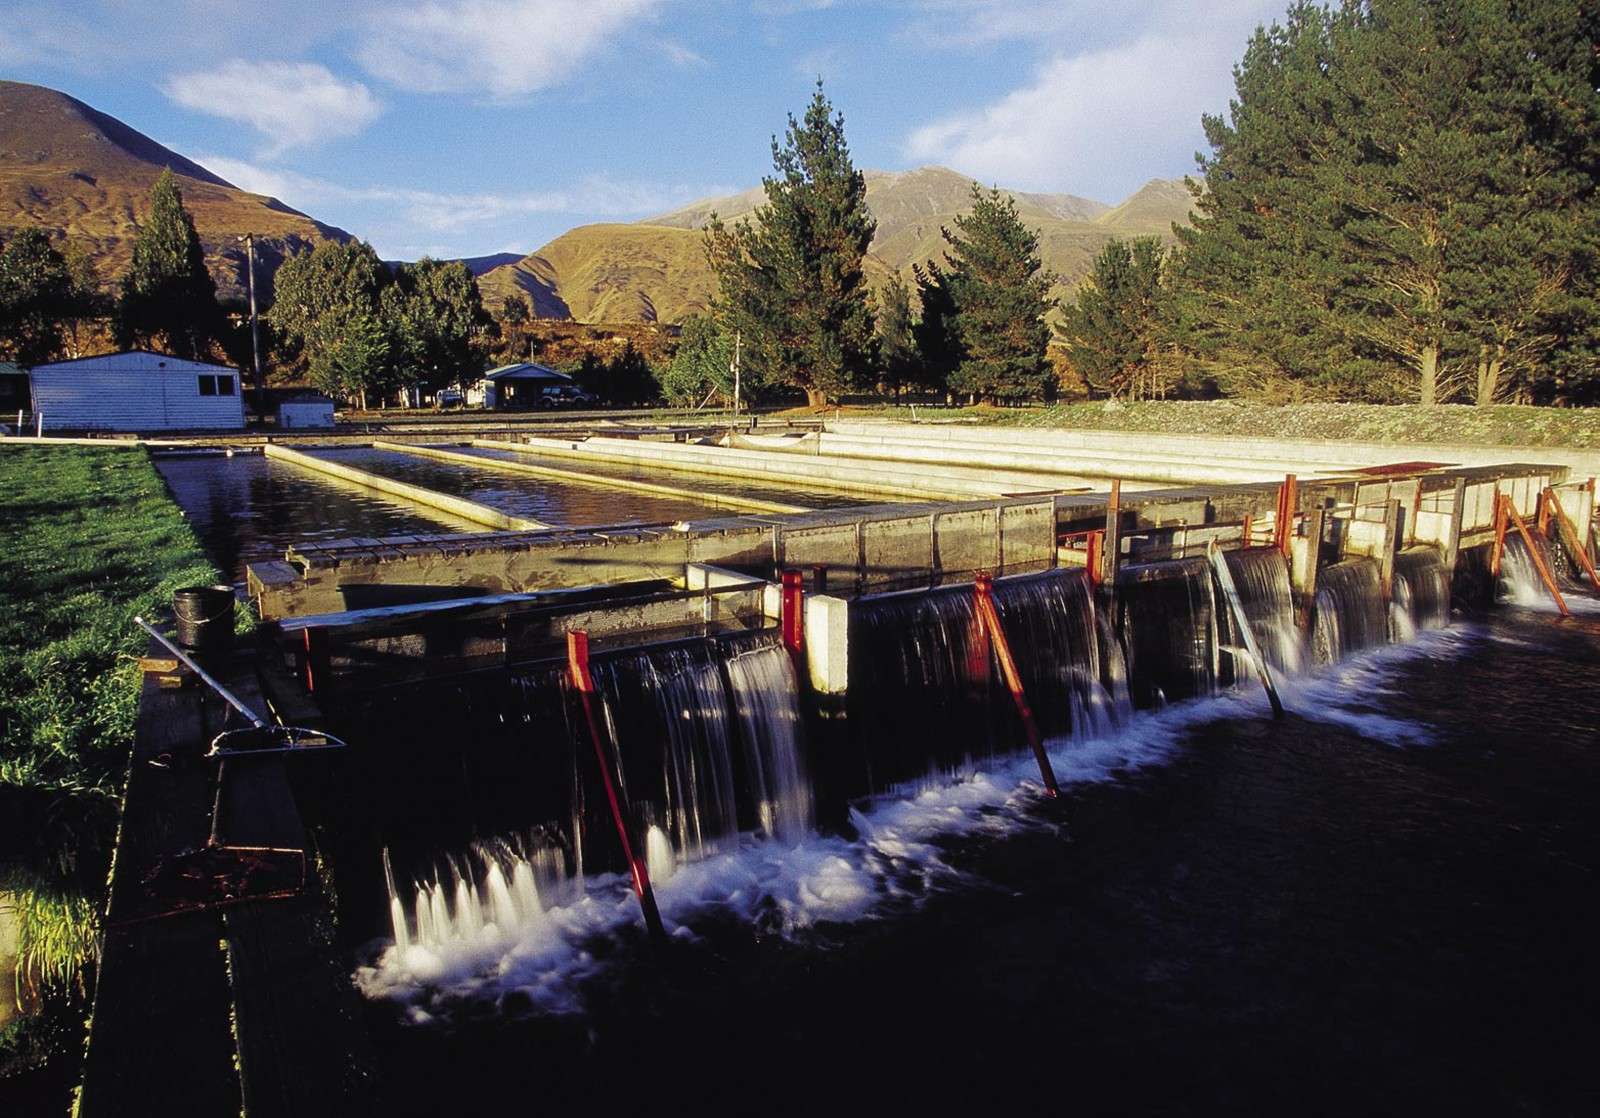 Montrose Hatchery, near the town of Rakaia, rears salmon from eggs to smolt stage.